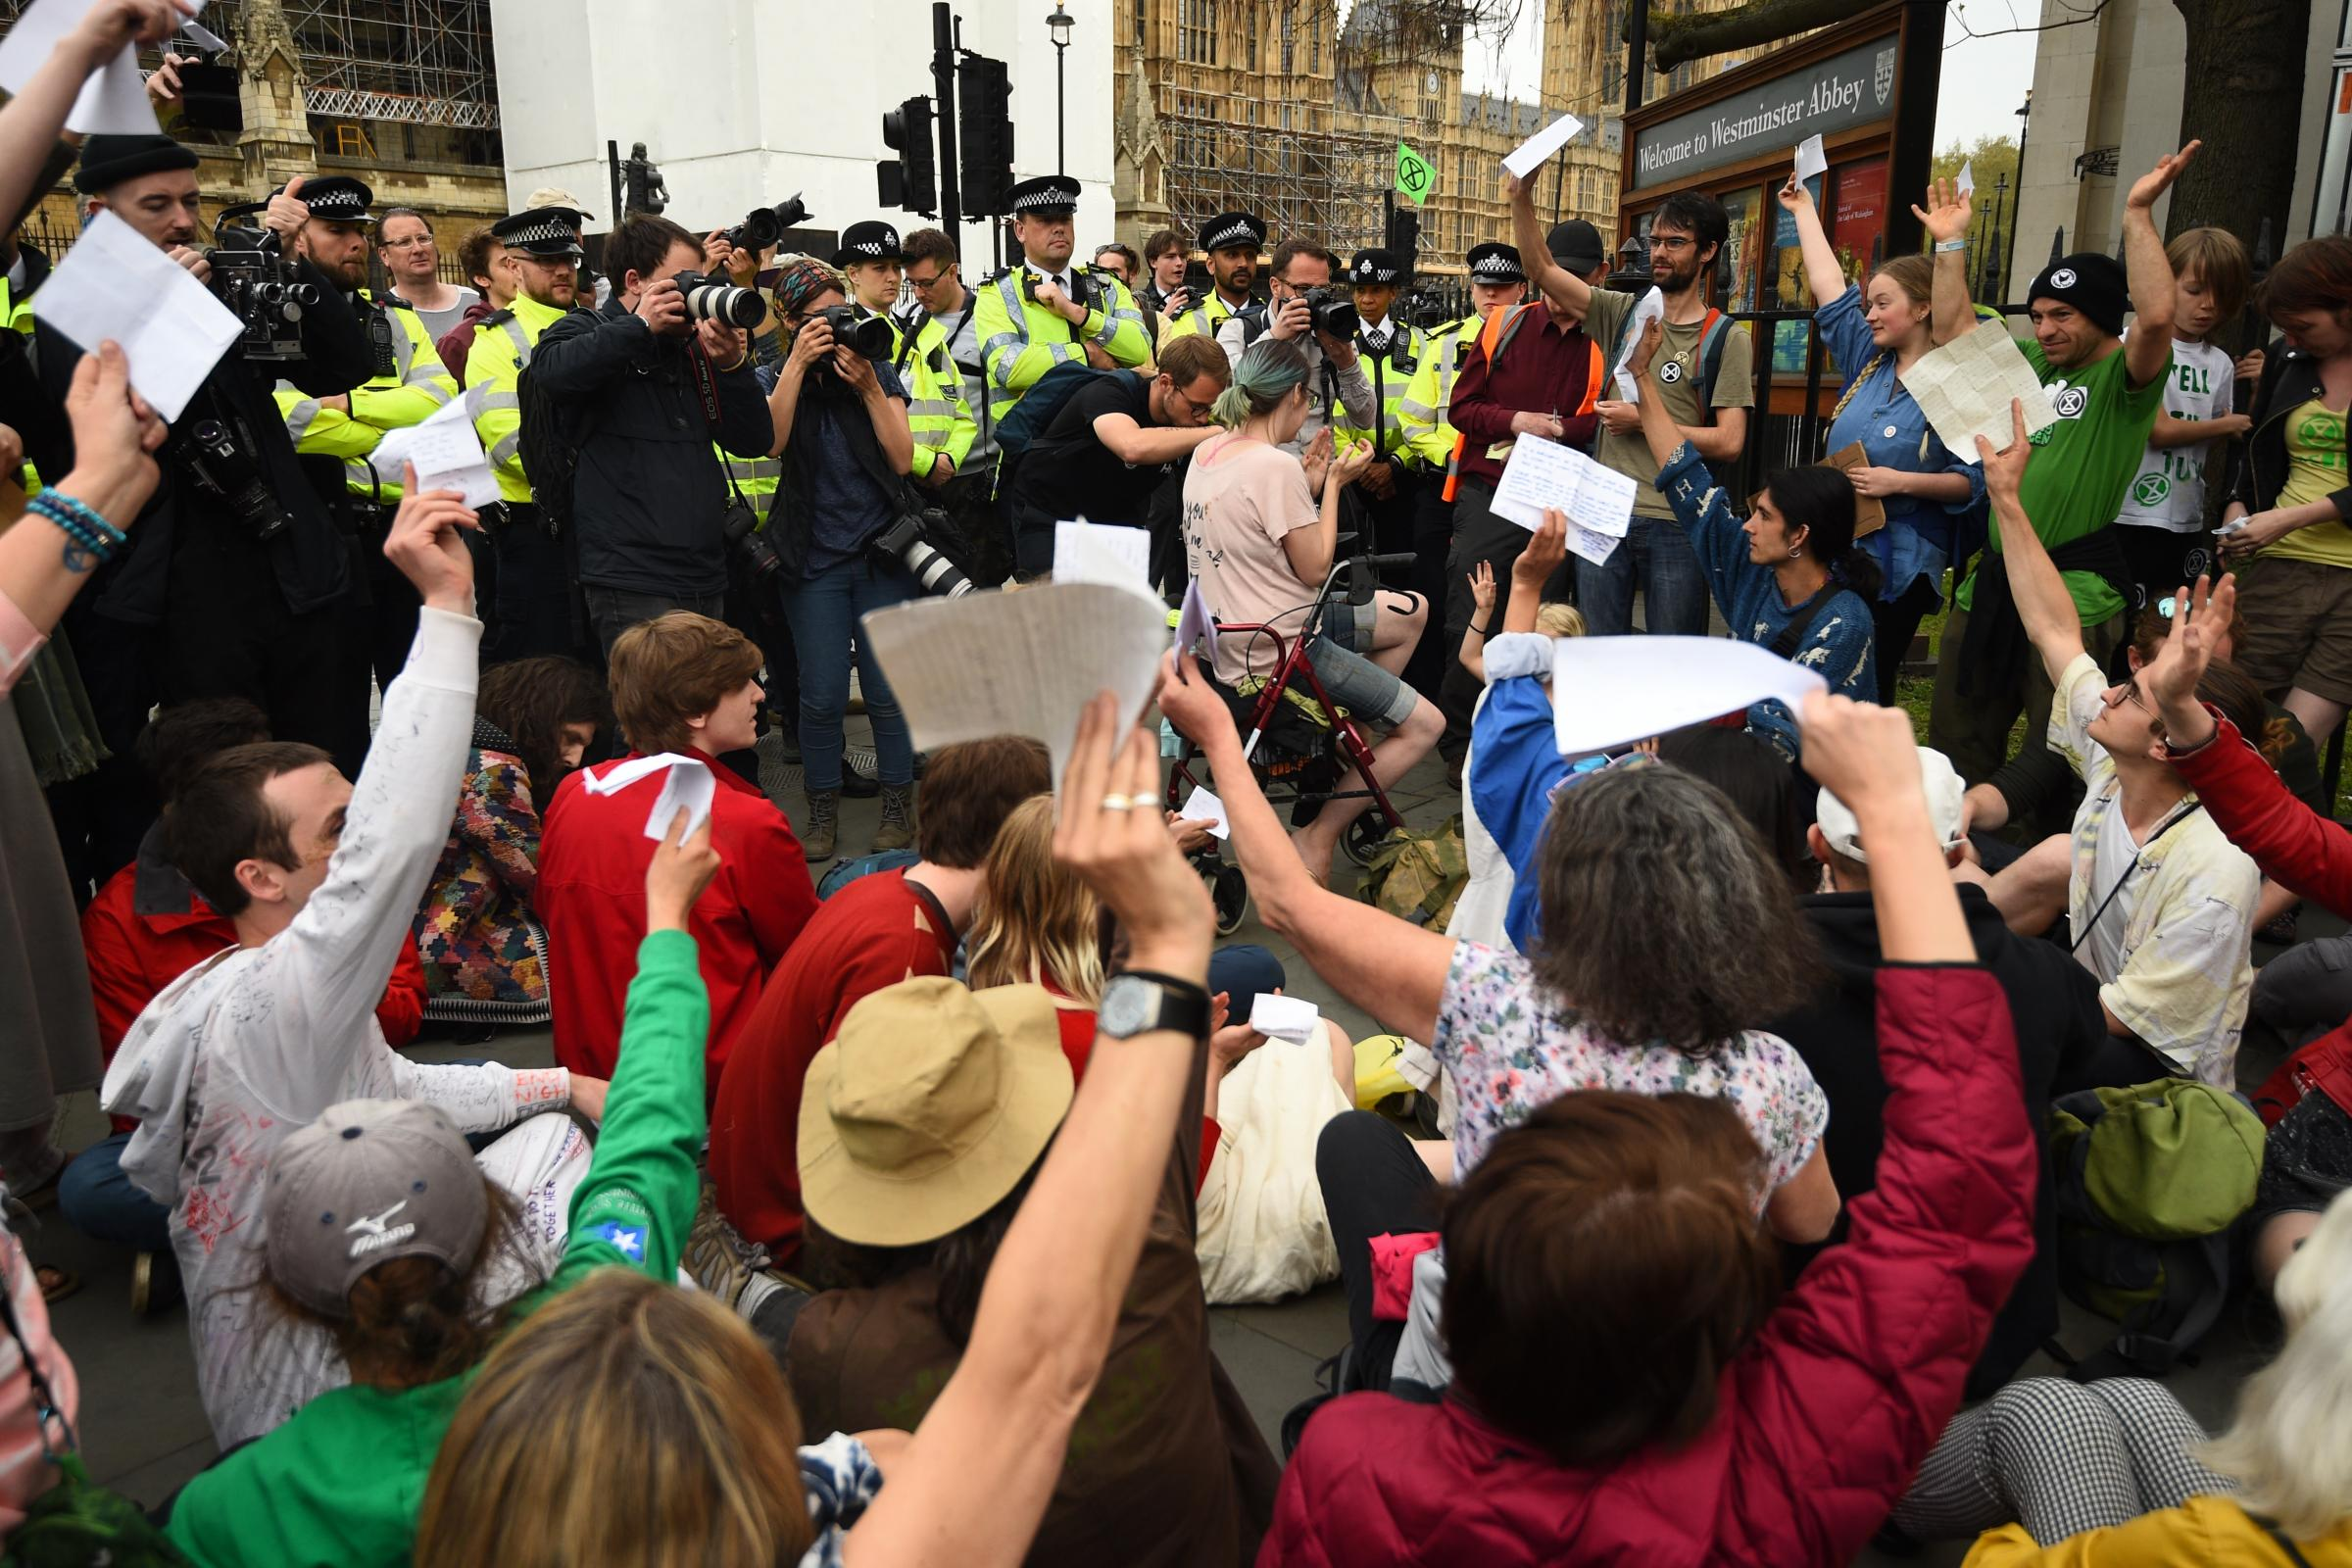 Extinction Rebellion protesters in Westminster hold up letters they have written to their MPs asking for action on climate issues